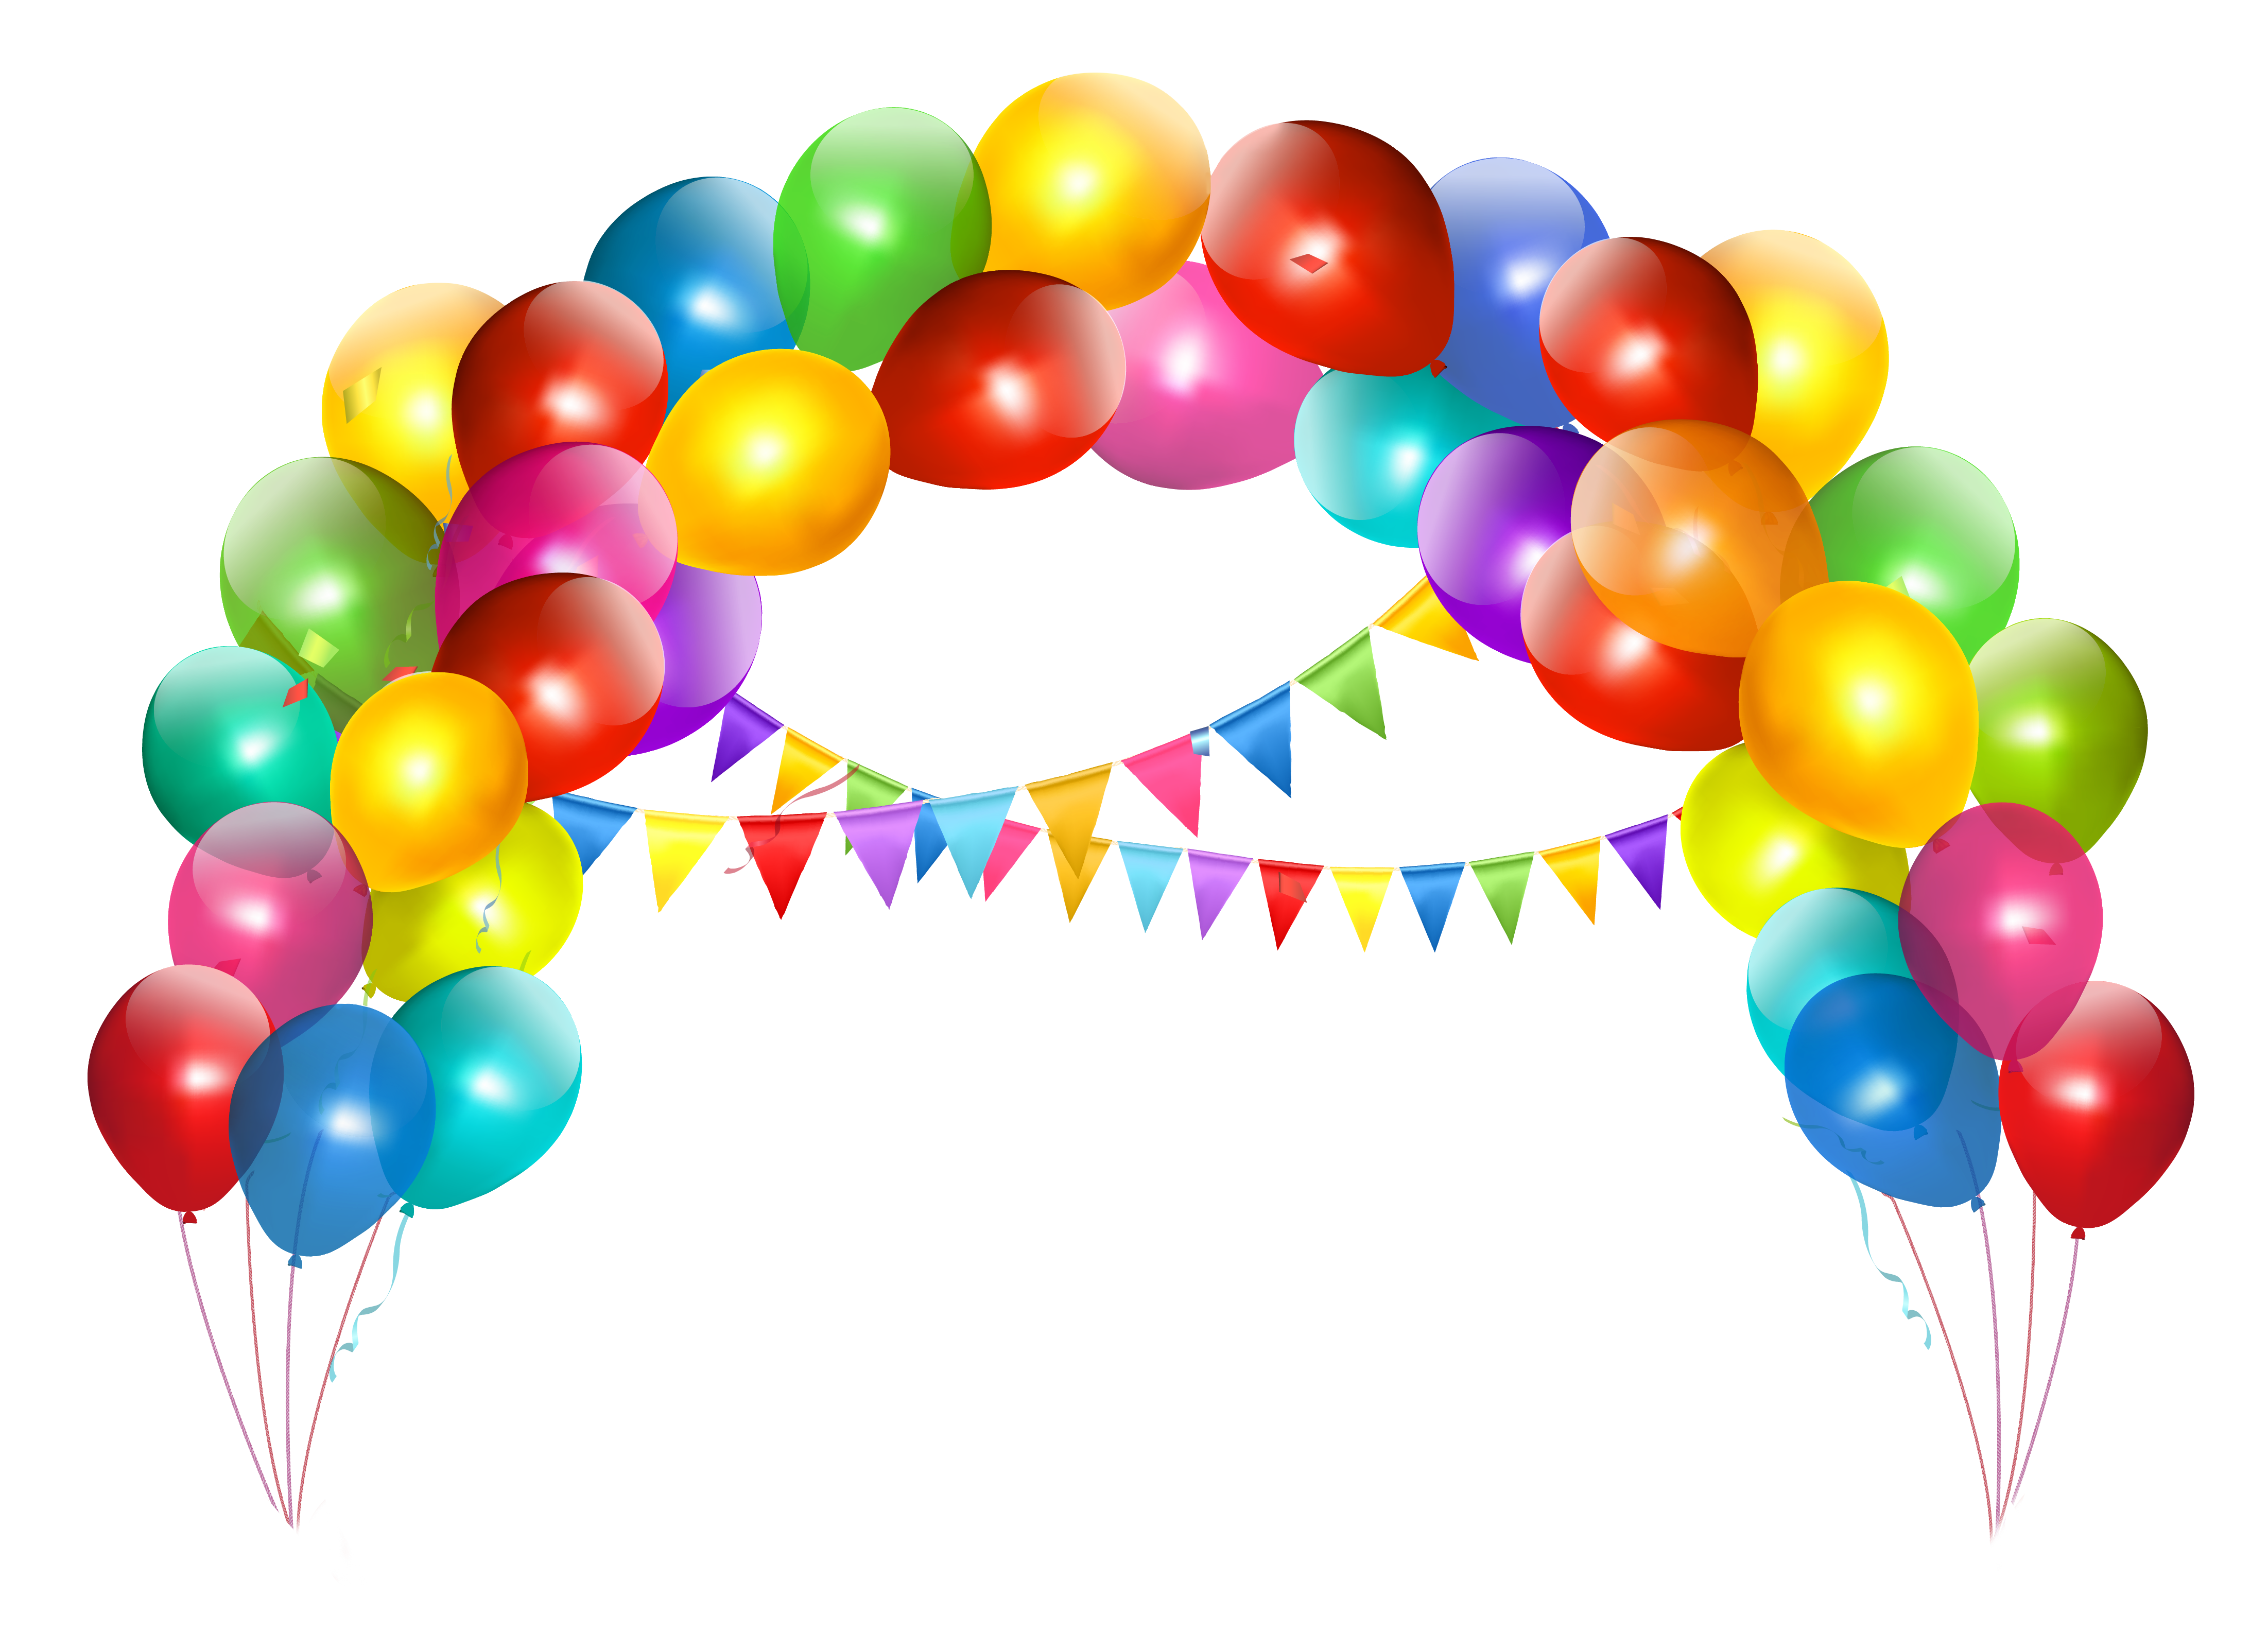 Balloon Arch Transparent PNG